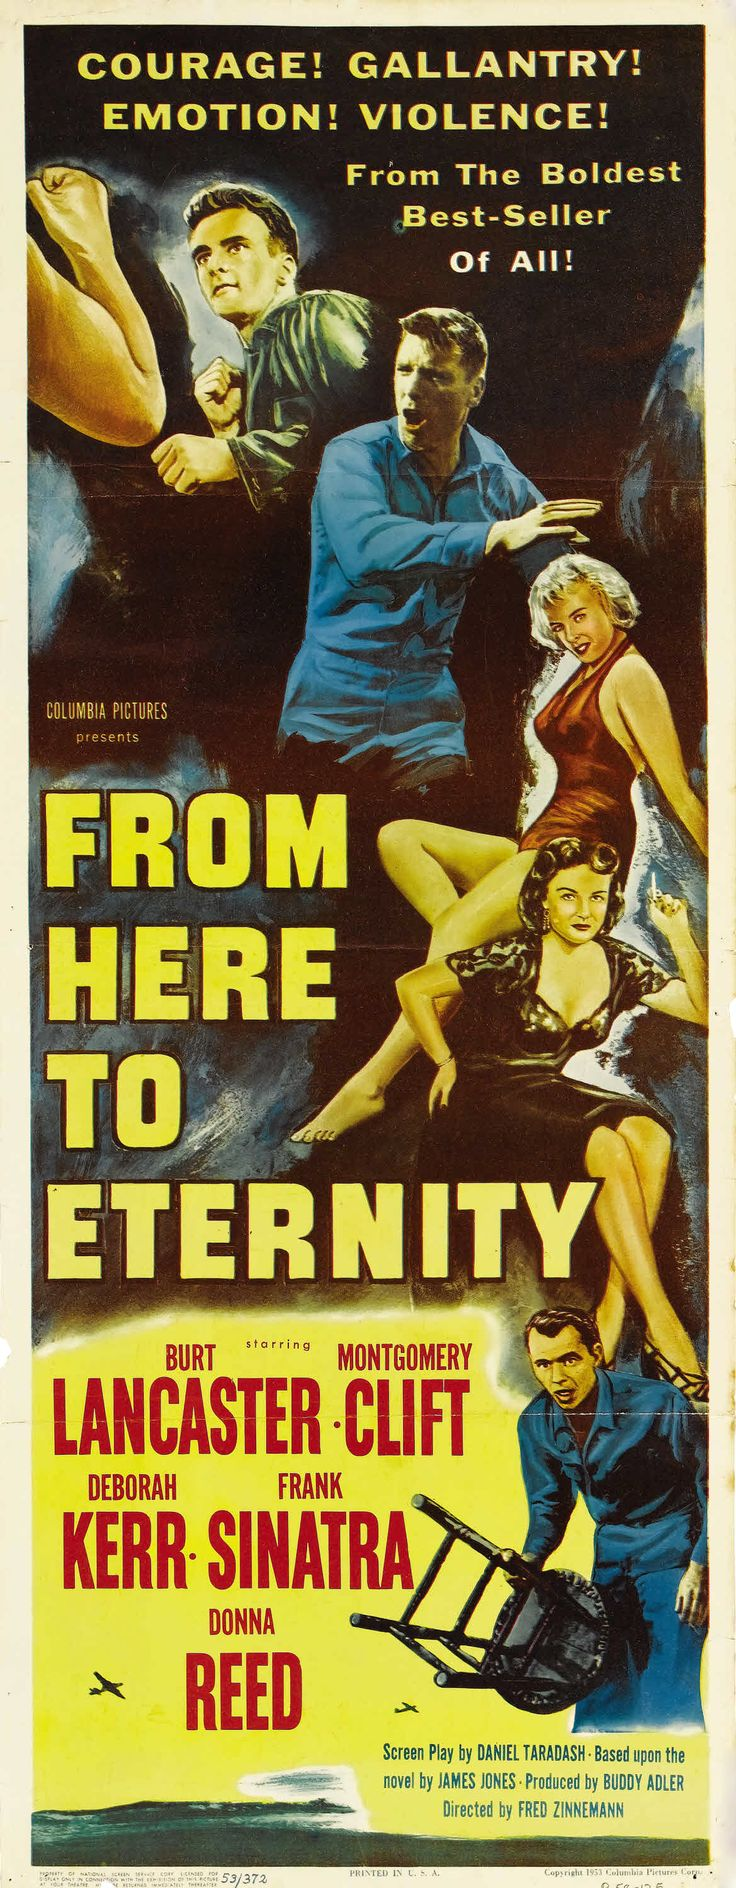 FROM HERE TO ETERNITY (De aquí a la eternidad) - 1953. Director: Fred Zinnemann. Productor: Buddy Adler.